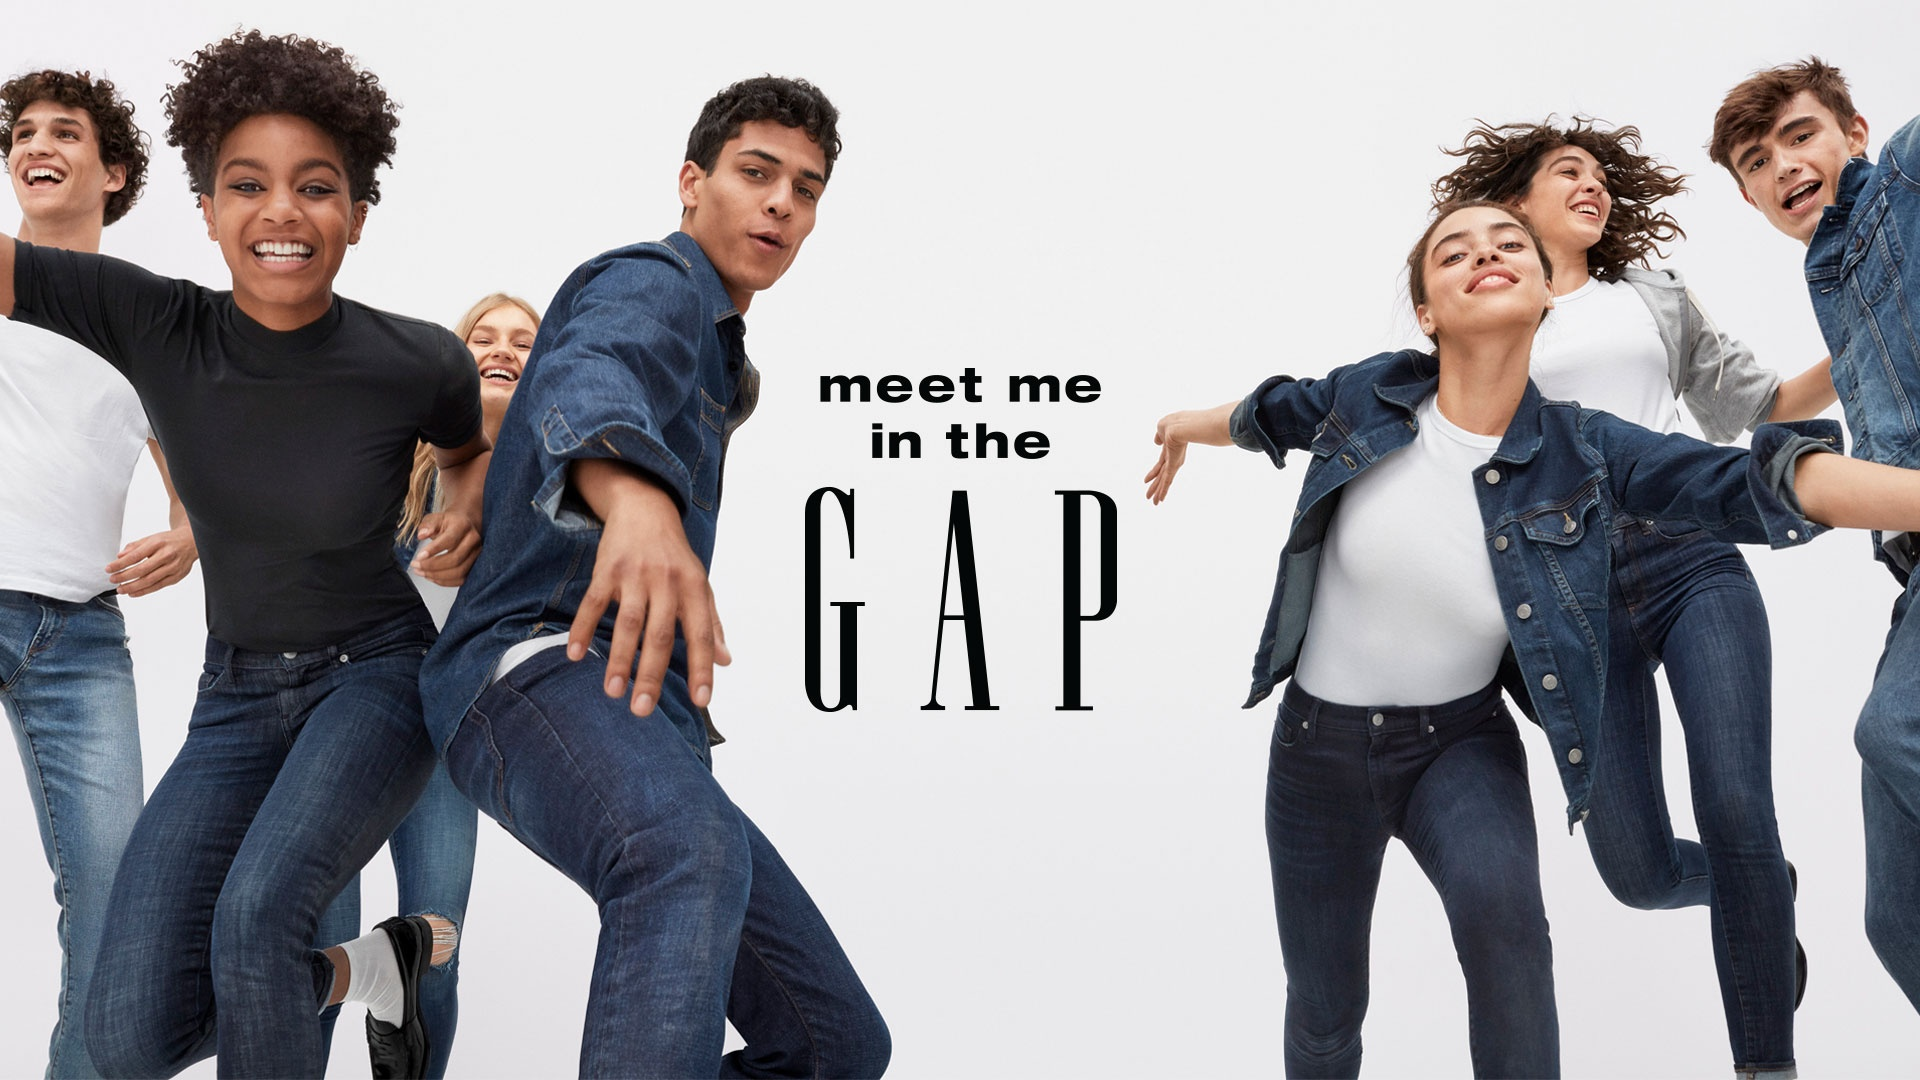 https://clios.com/fashion-beauty/winner/mass-integrated-campaign/gap/meet-me-in-the-gap-36574